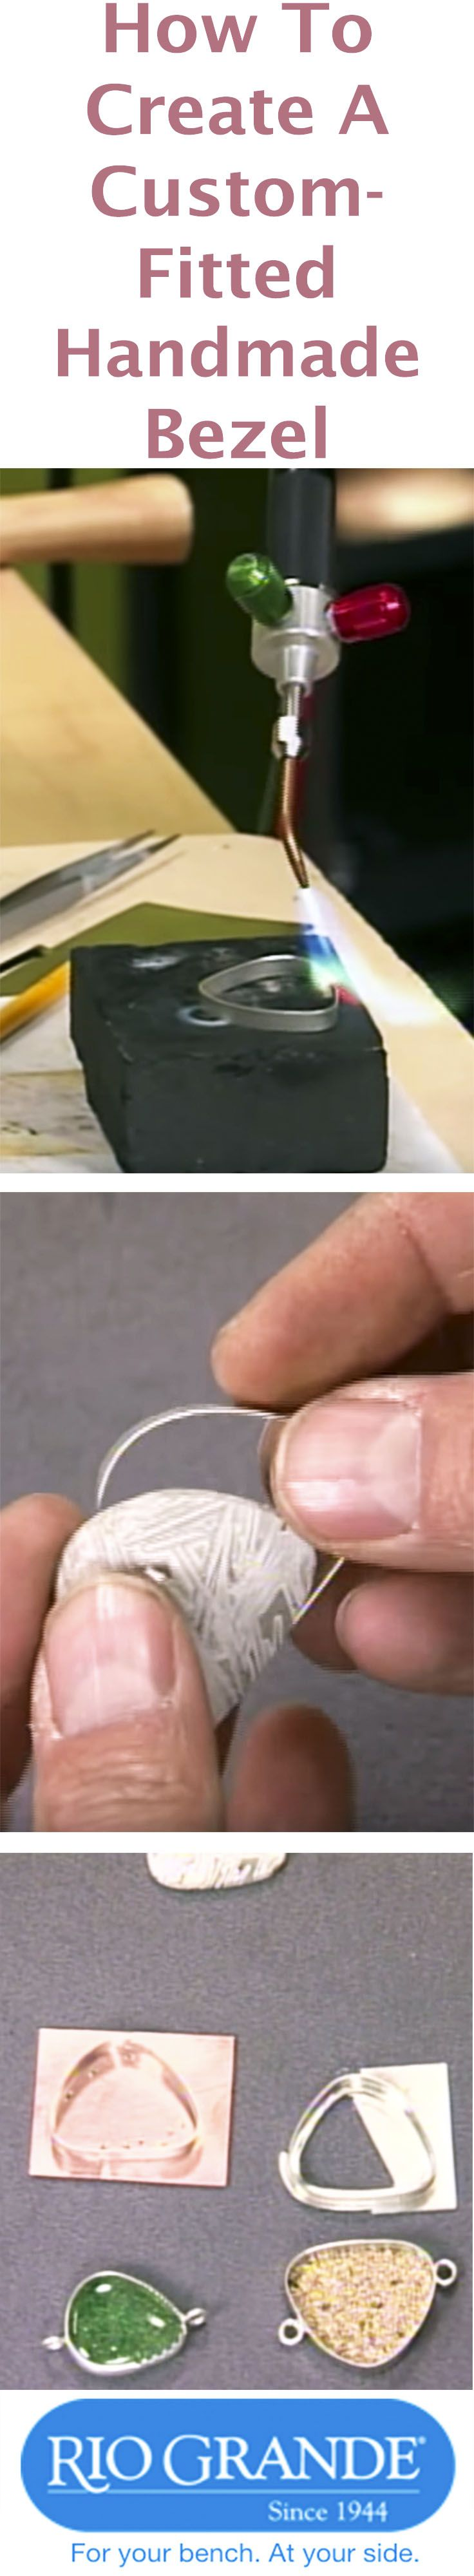 How To Create A Custom-Fitted Handmade Bezel -  Have an odd-sized stone, glass or jewelry piece you want to bezel-mount to create a pendant, brooch, earring or other design? See in this video how to create perfectly sized custom-fitted bezels from wire stock.